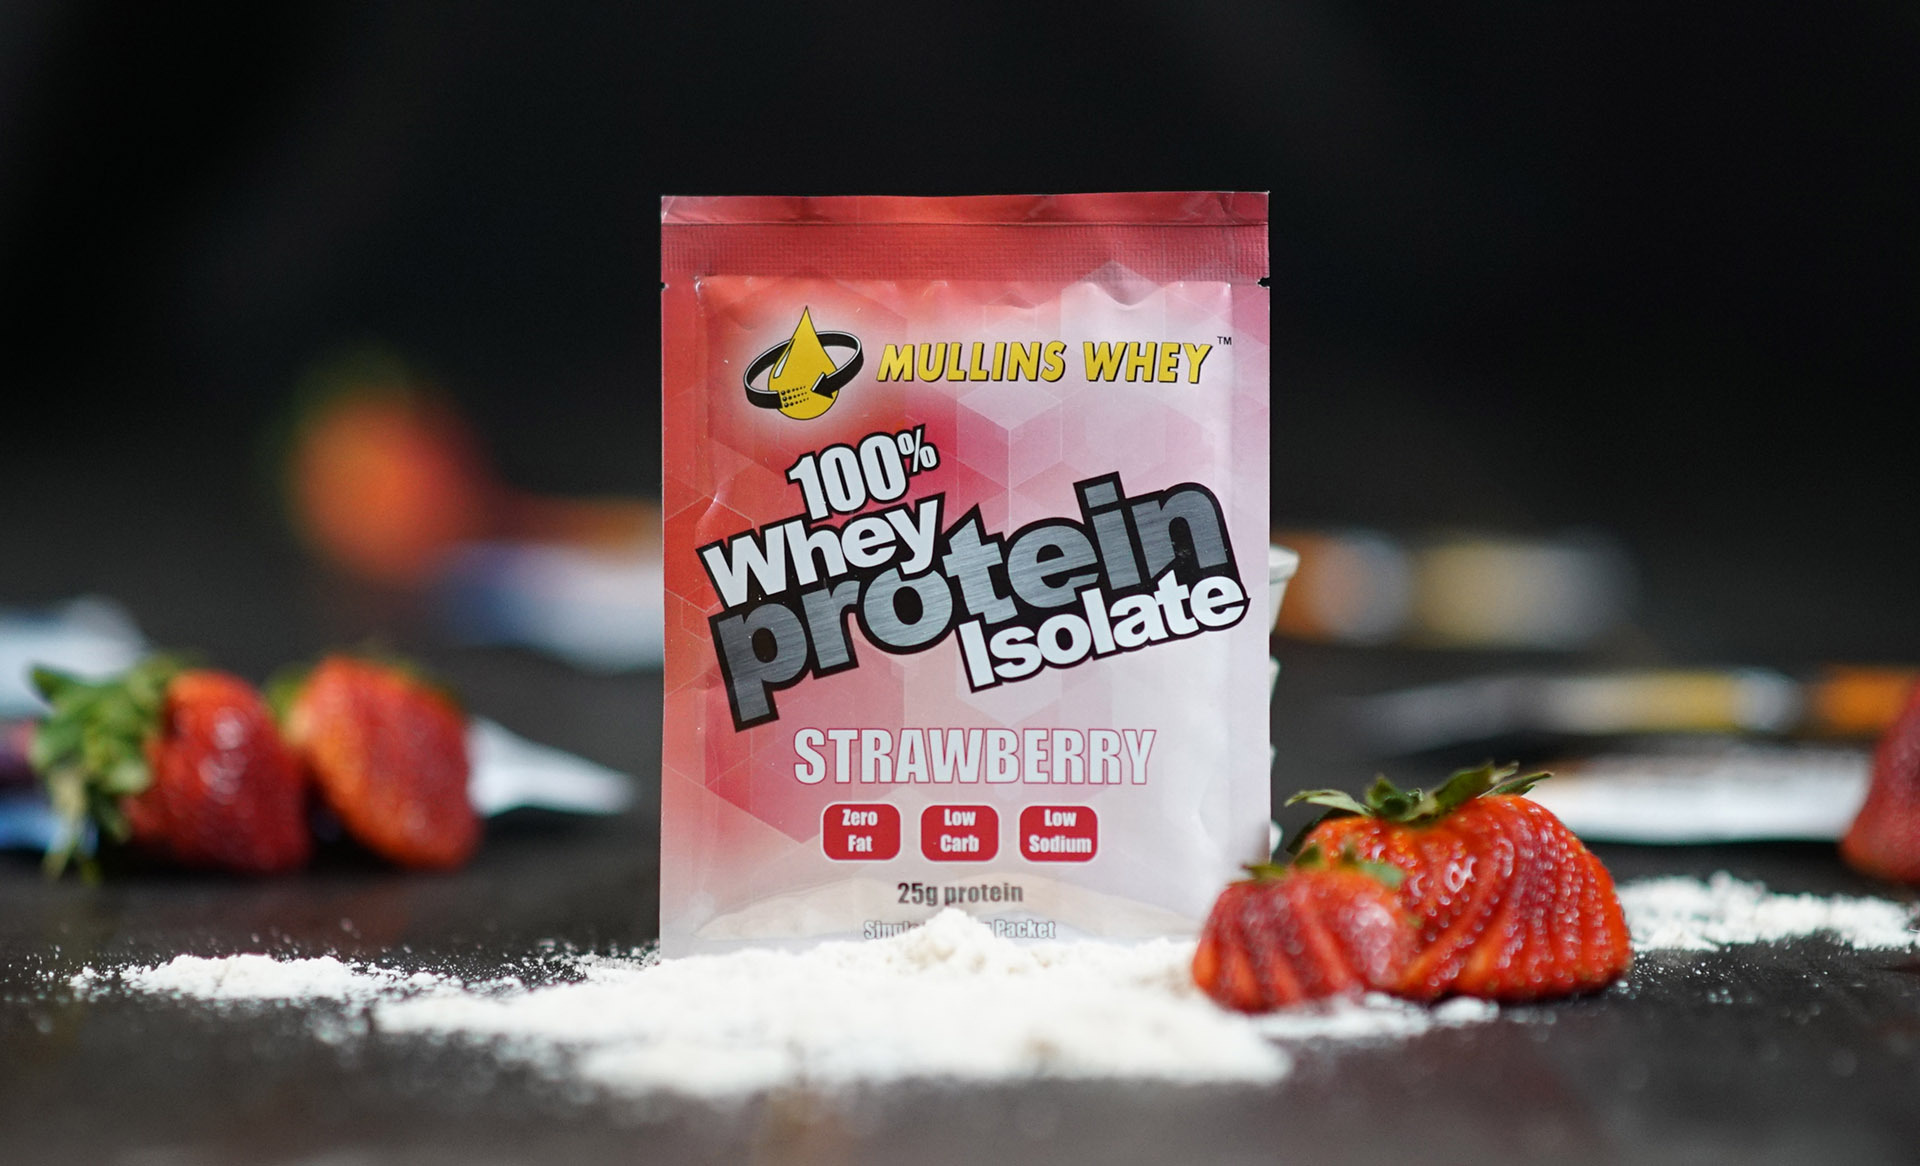 Mullins Whey Protein Strawberry